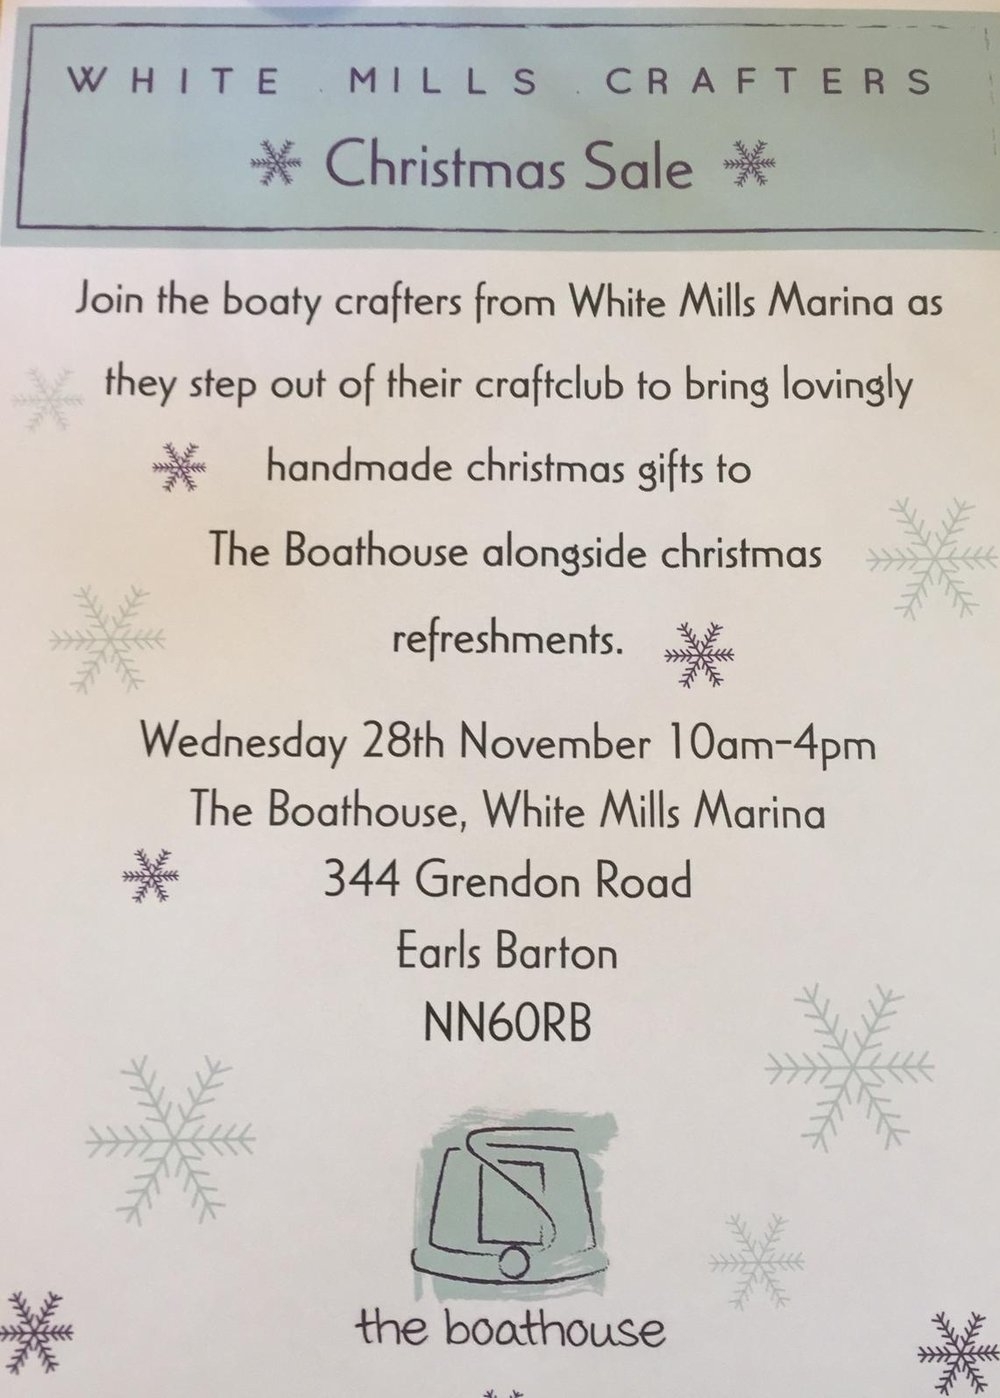 boathouse_river_nene_white_mills_marina-crafters_christmas_sale